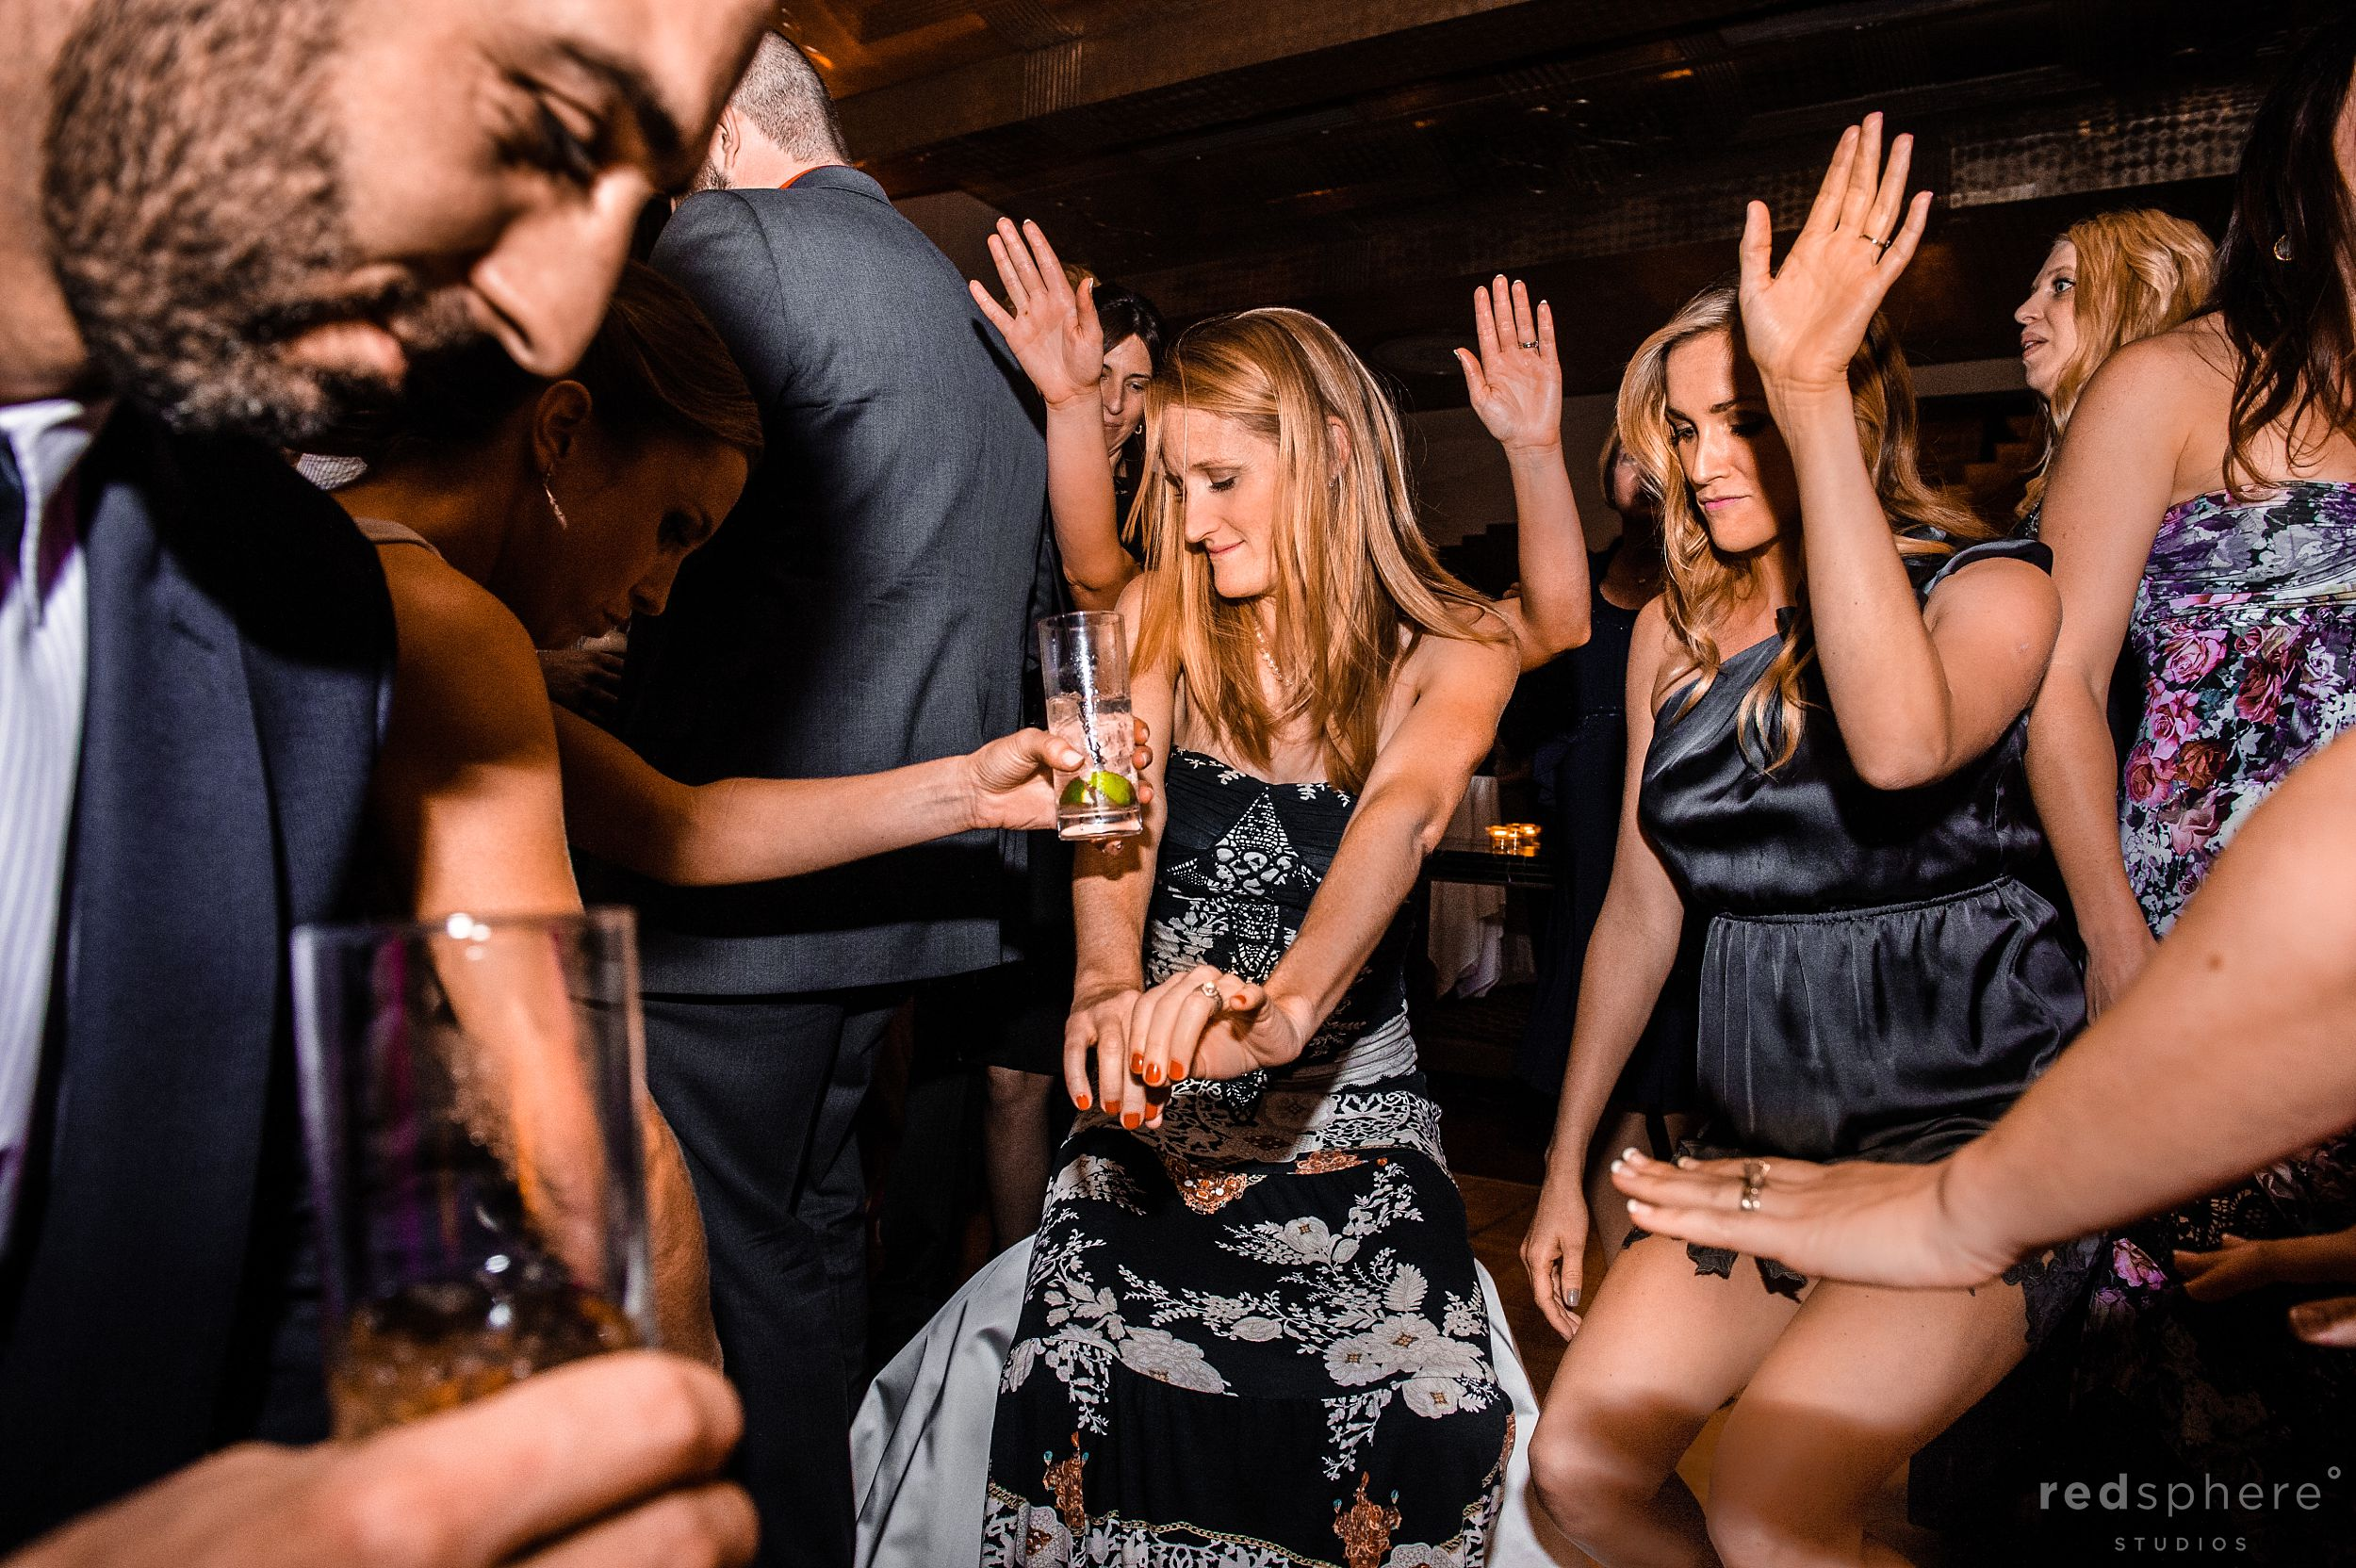 Guests Putting Their Hands Up and Dancing at City Club Wedding After Party